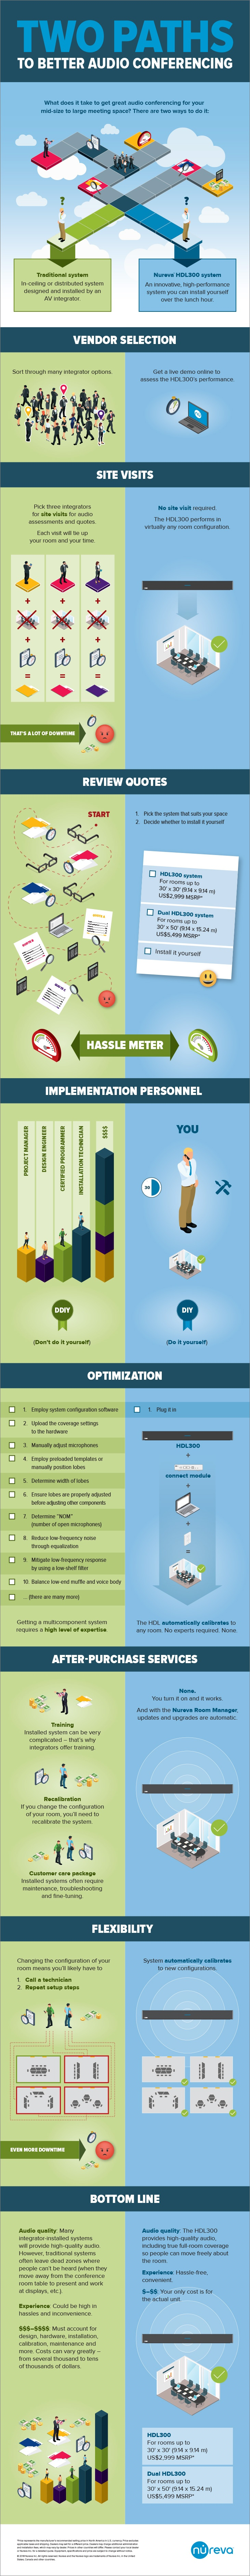 Two paths to better audio conferencing infographic